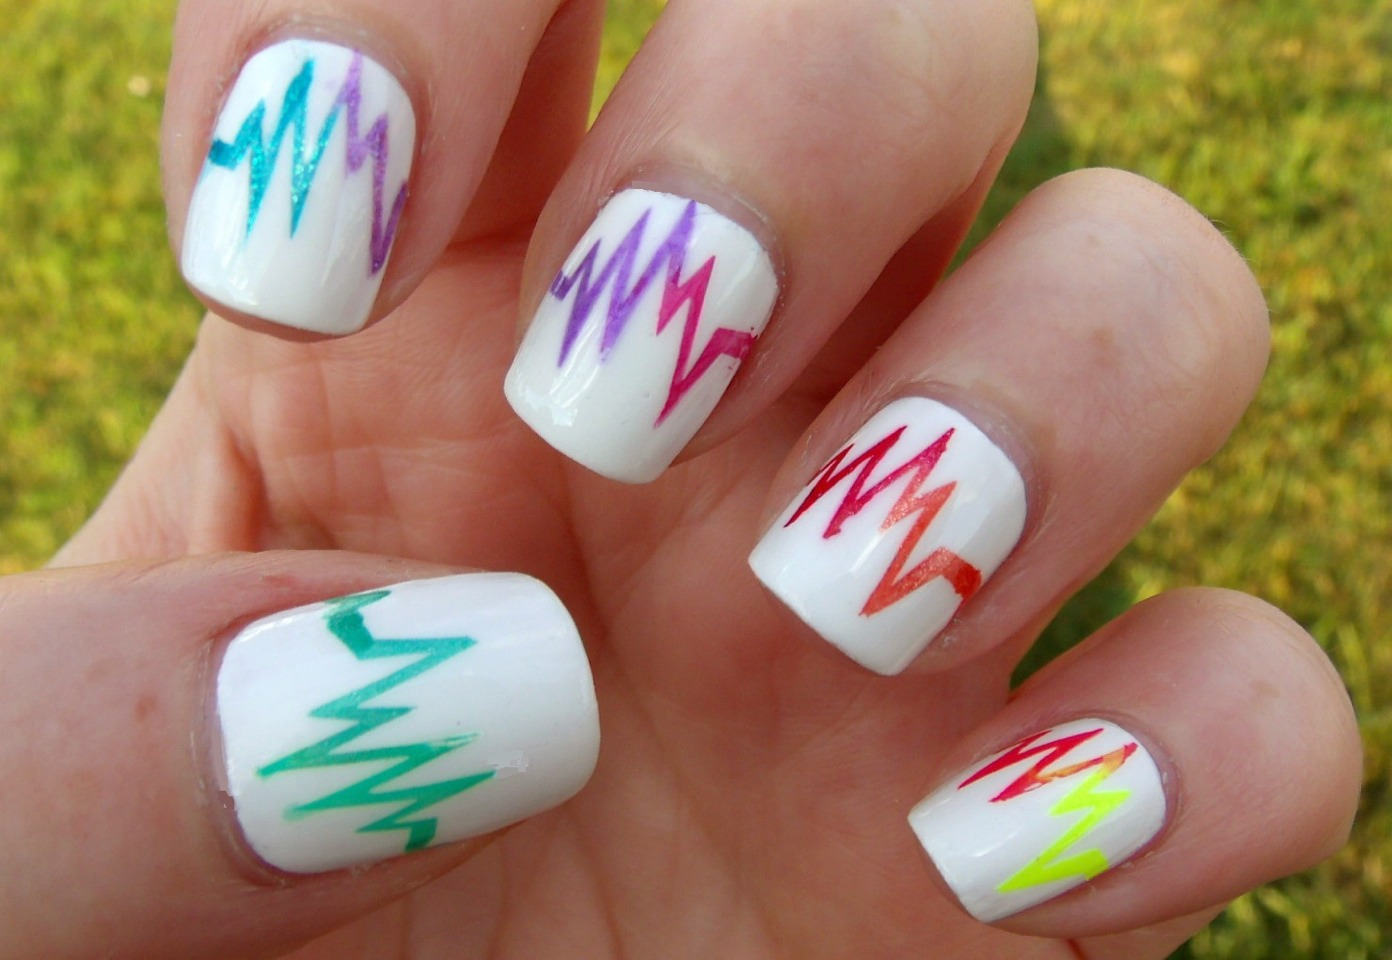 If you are a girl do Mani Pet-ti's!  You can show off your cool nails the day after!